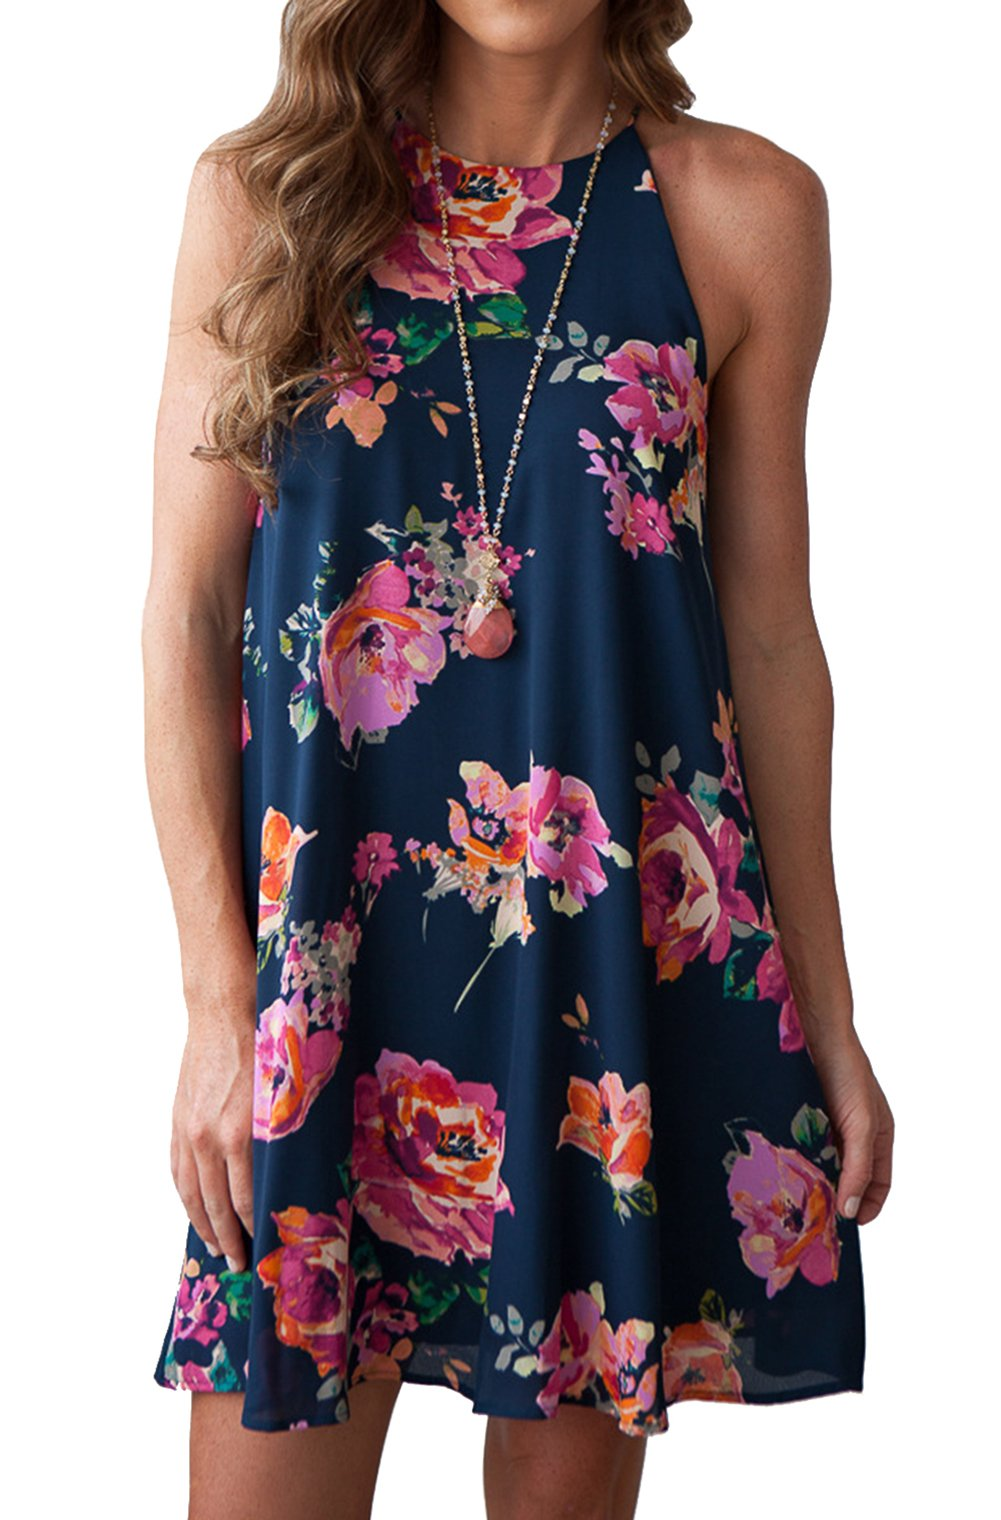 MITILLY Women's Halter Neck Boho Floral Print Chiffon Casual Sleeveless Short Dress Large Dark Blue